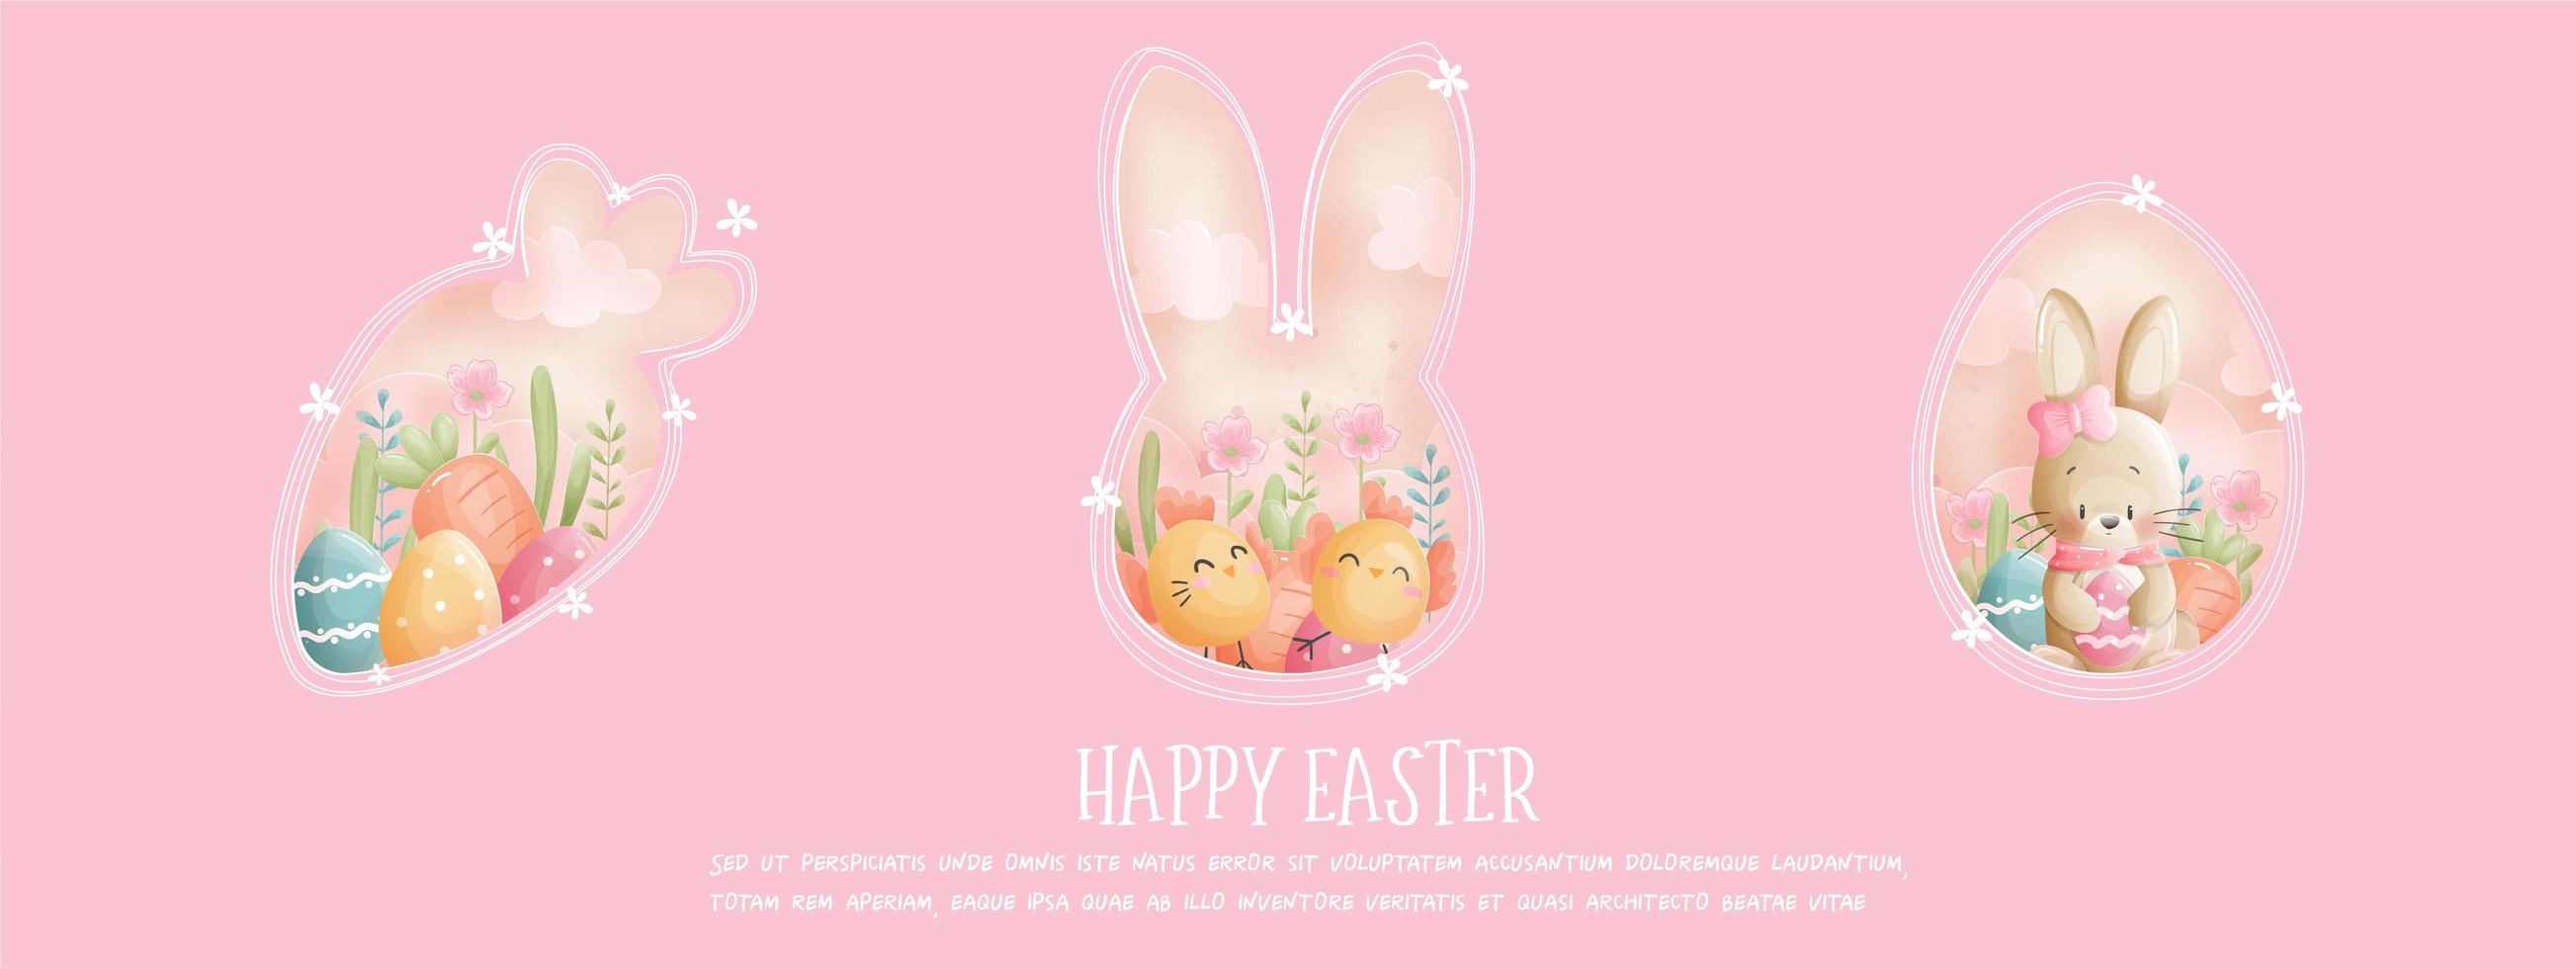 Happy Easter pink banner with bunny and chicks vector